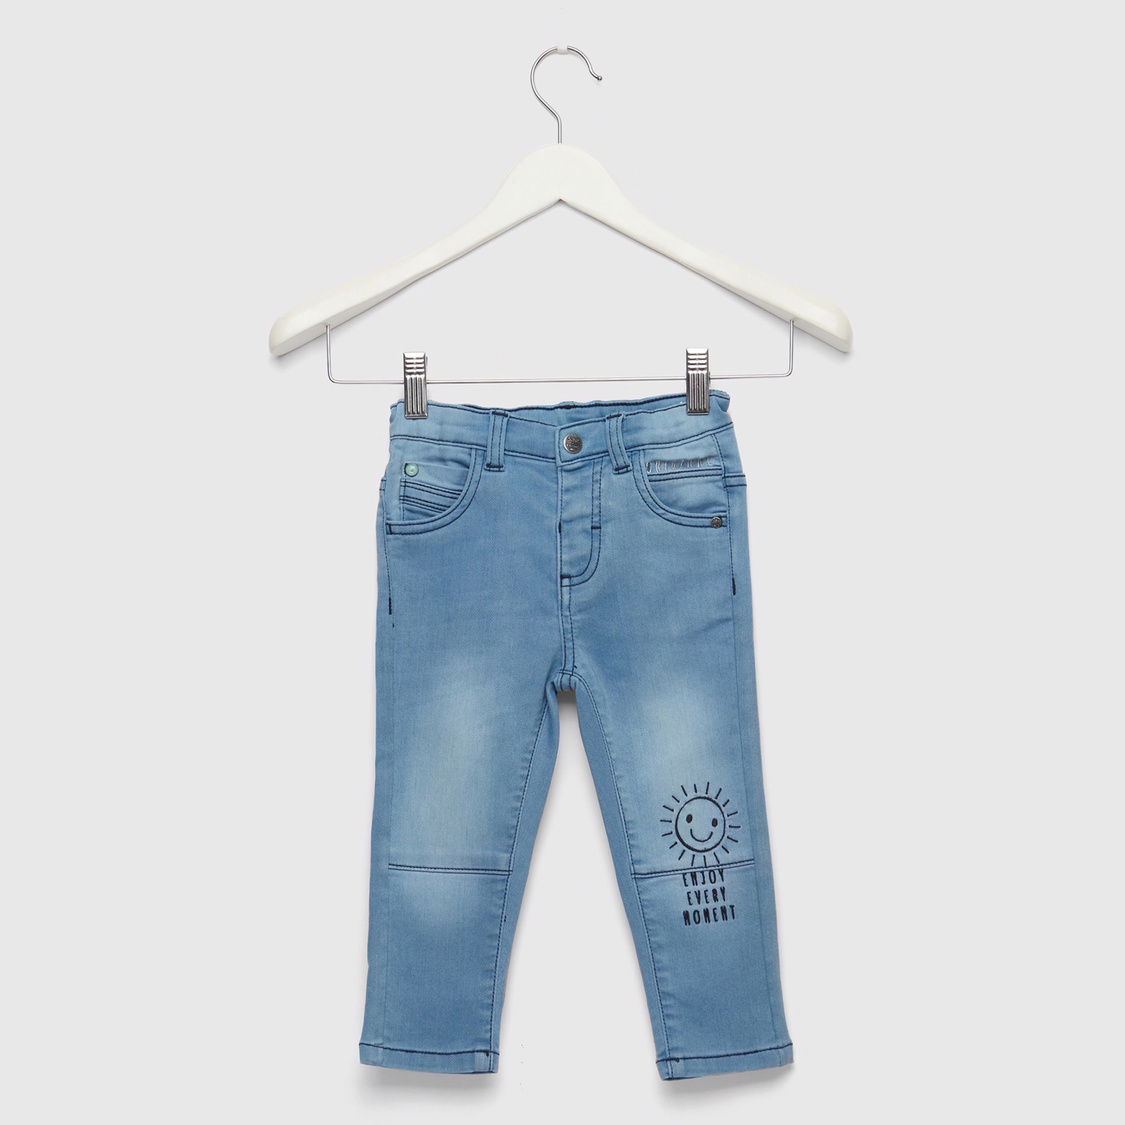 Full Length Embroidered Mid-Rise Jeans with Zip Closure